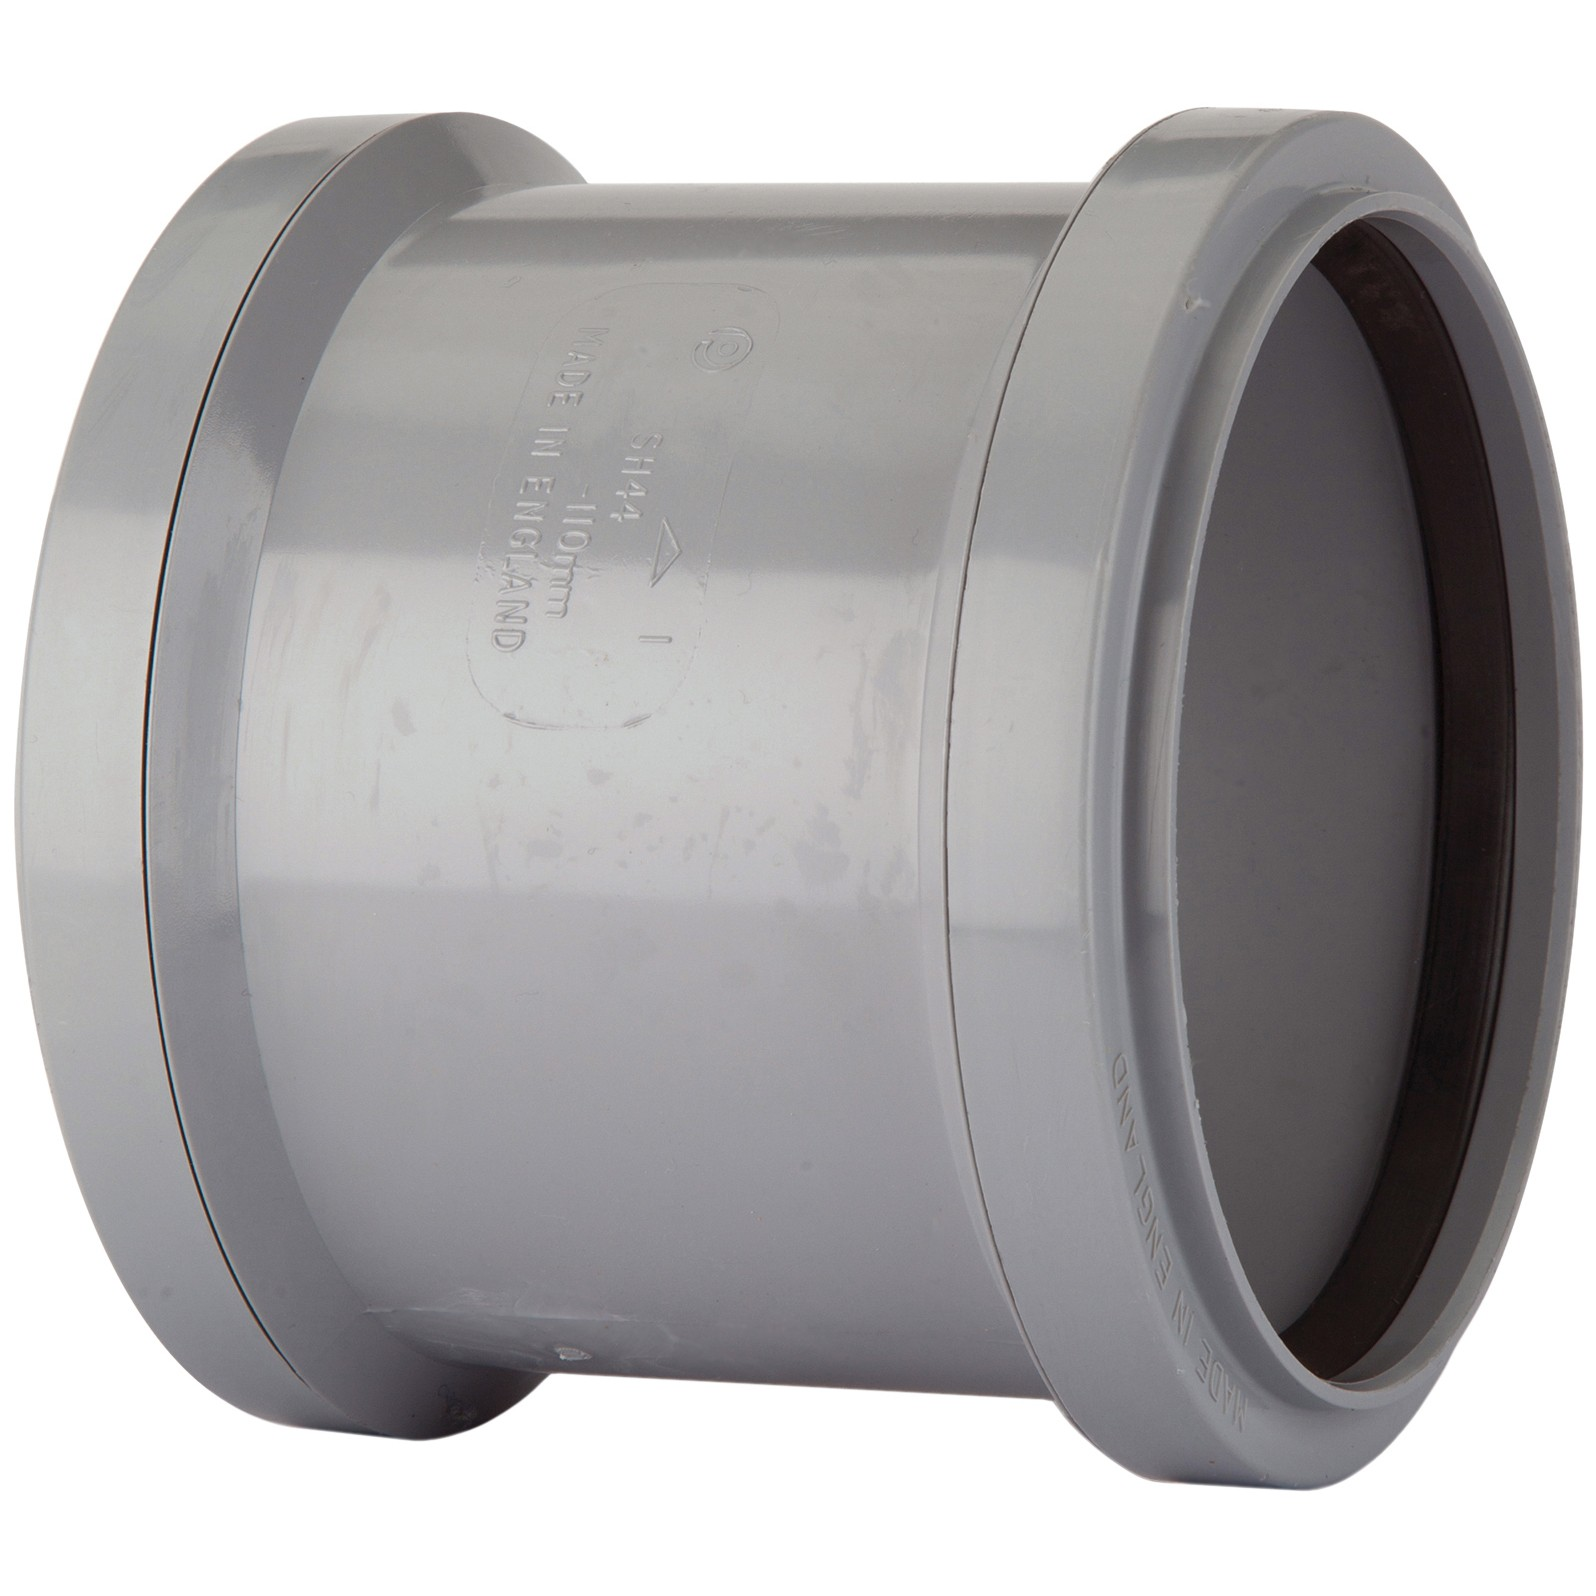 Polypipe 110mm Soil Double Socket Coupler - Grey